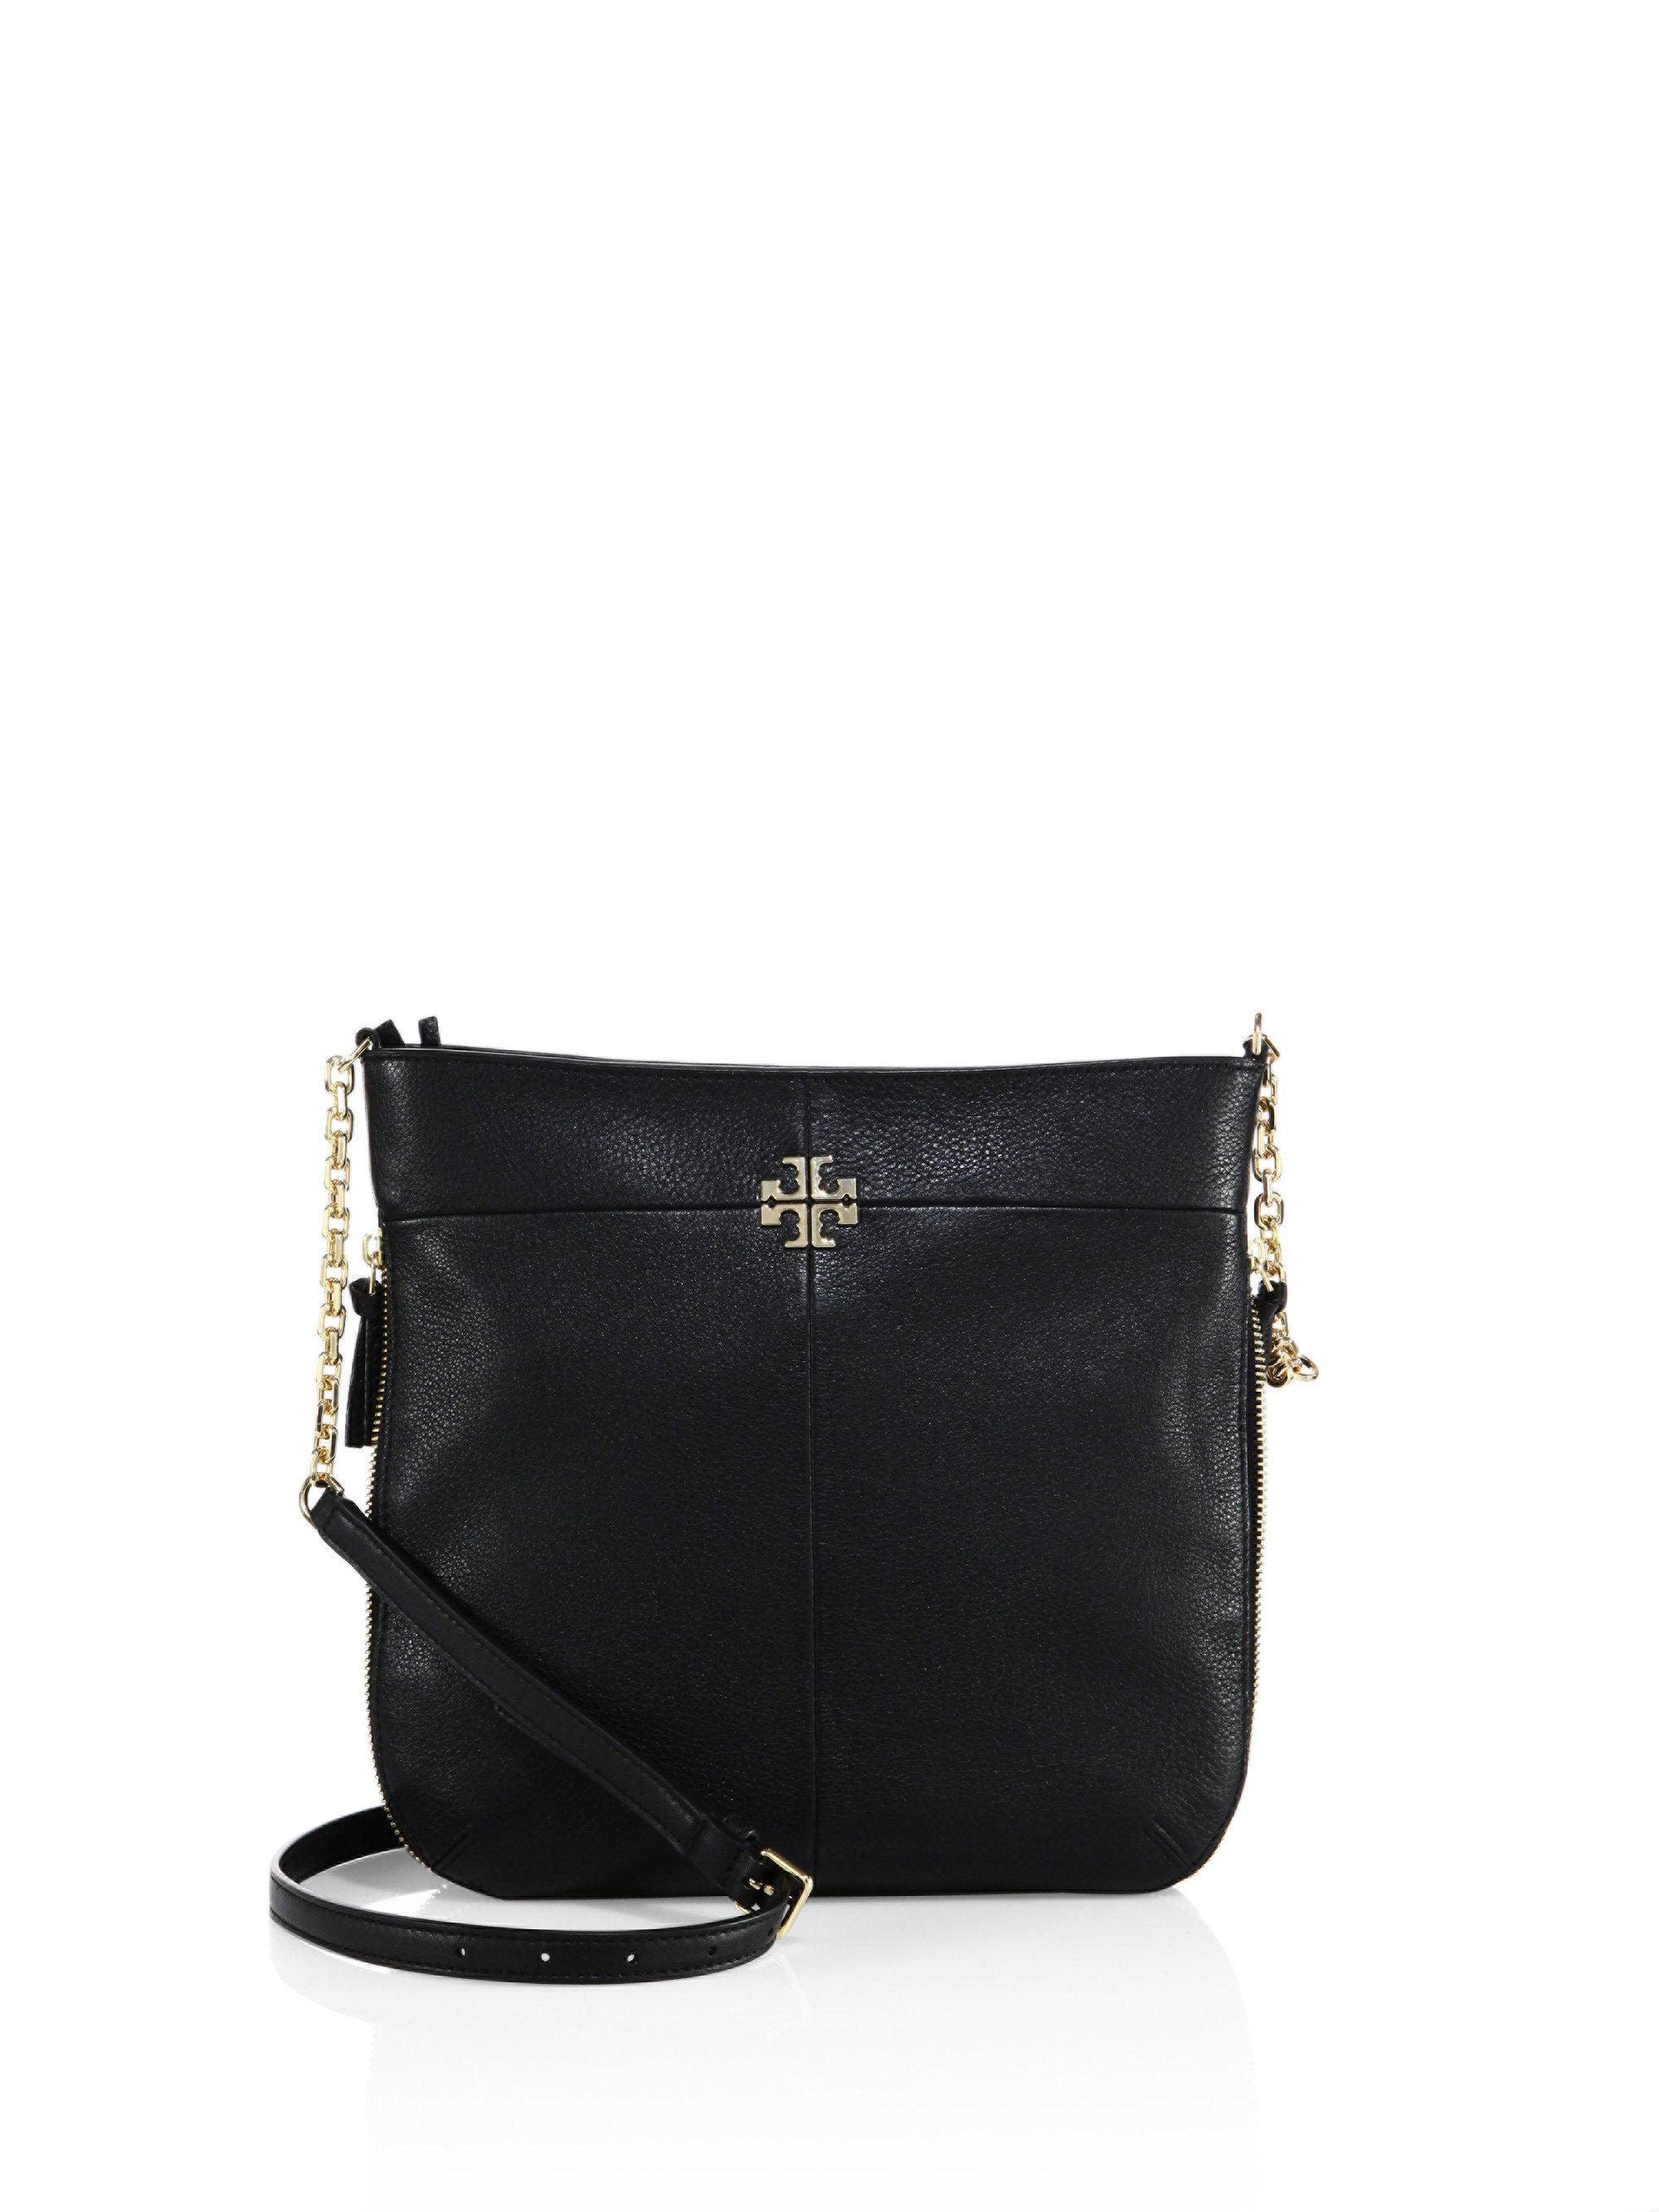 3f474ced0c07 Lyst - Tory Burch Ivy Convertible Leather Shoulder Bag in Black